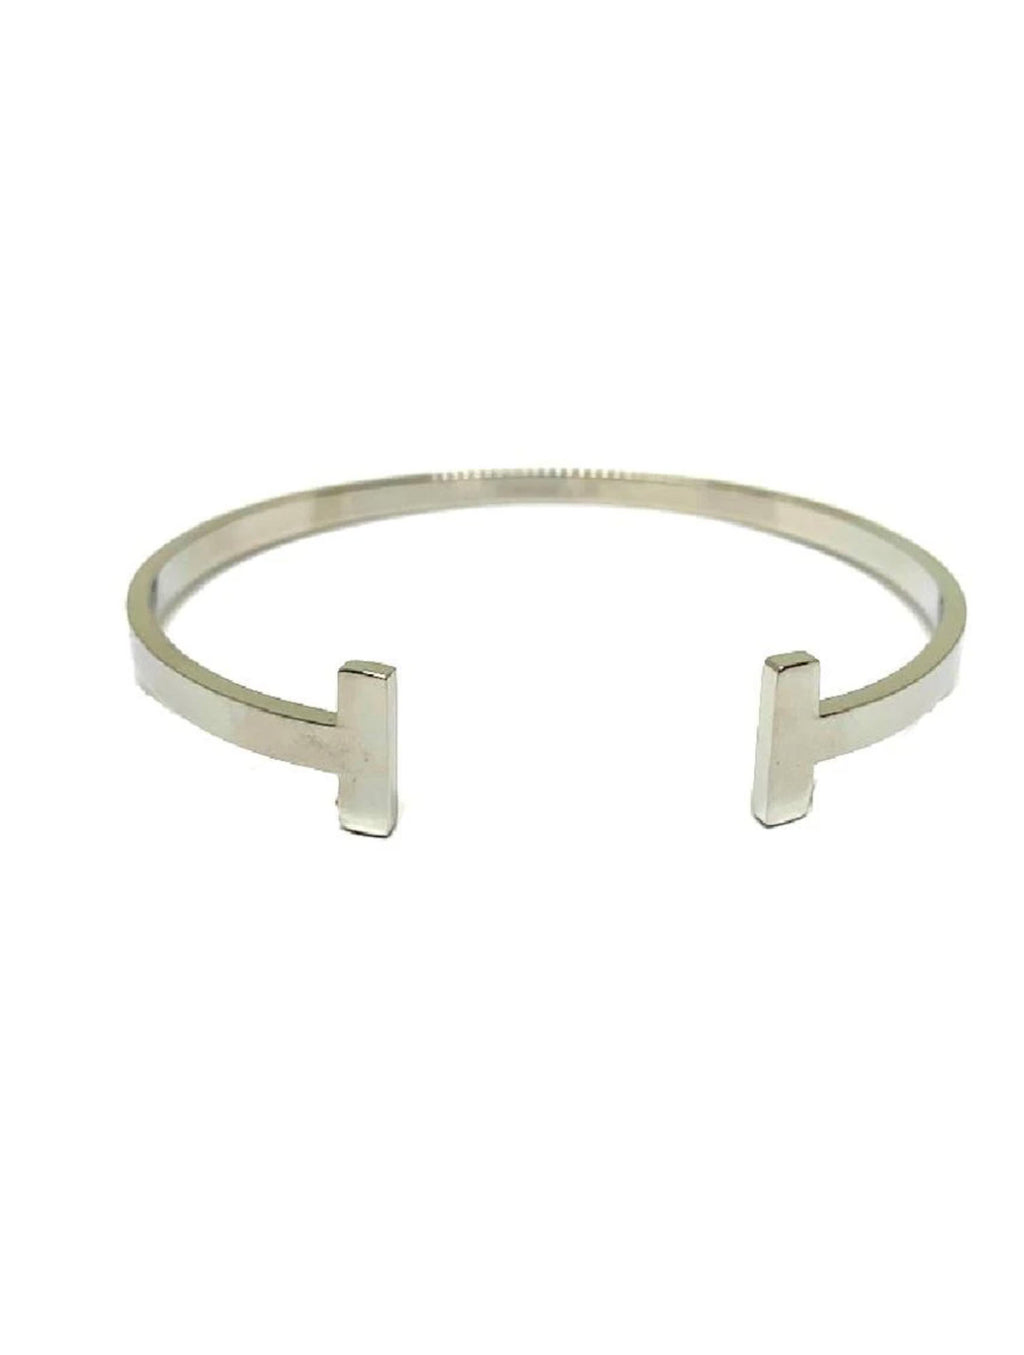 Athena Designs T Bangle Cuff in Silver